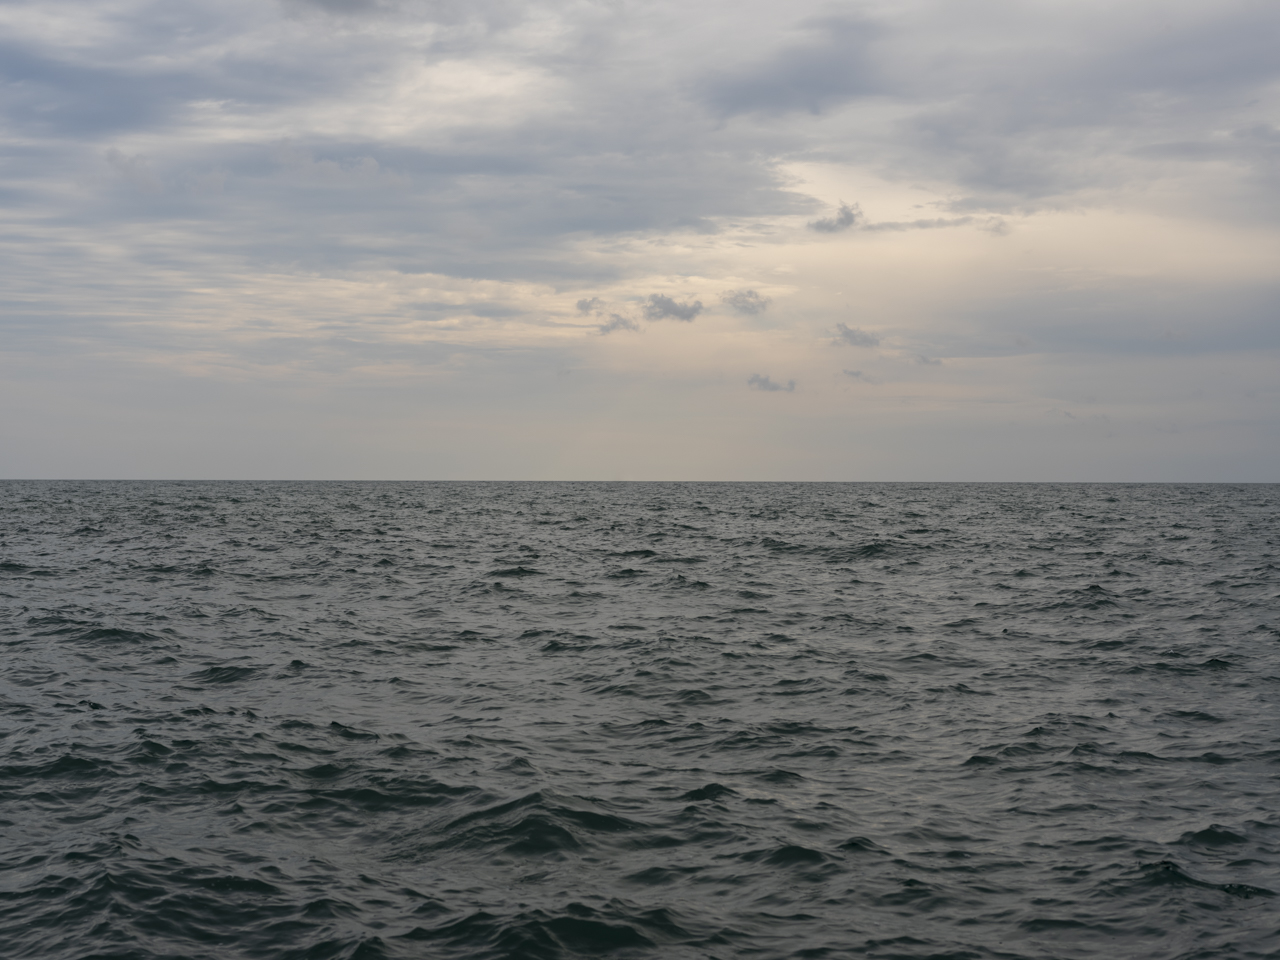 cloudy skies over green gray waters on lake michigan, subdued tones and a heaviness to the air